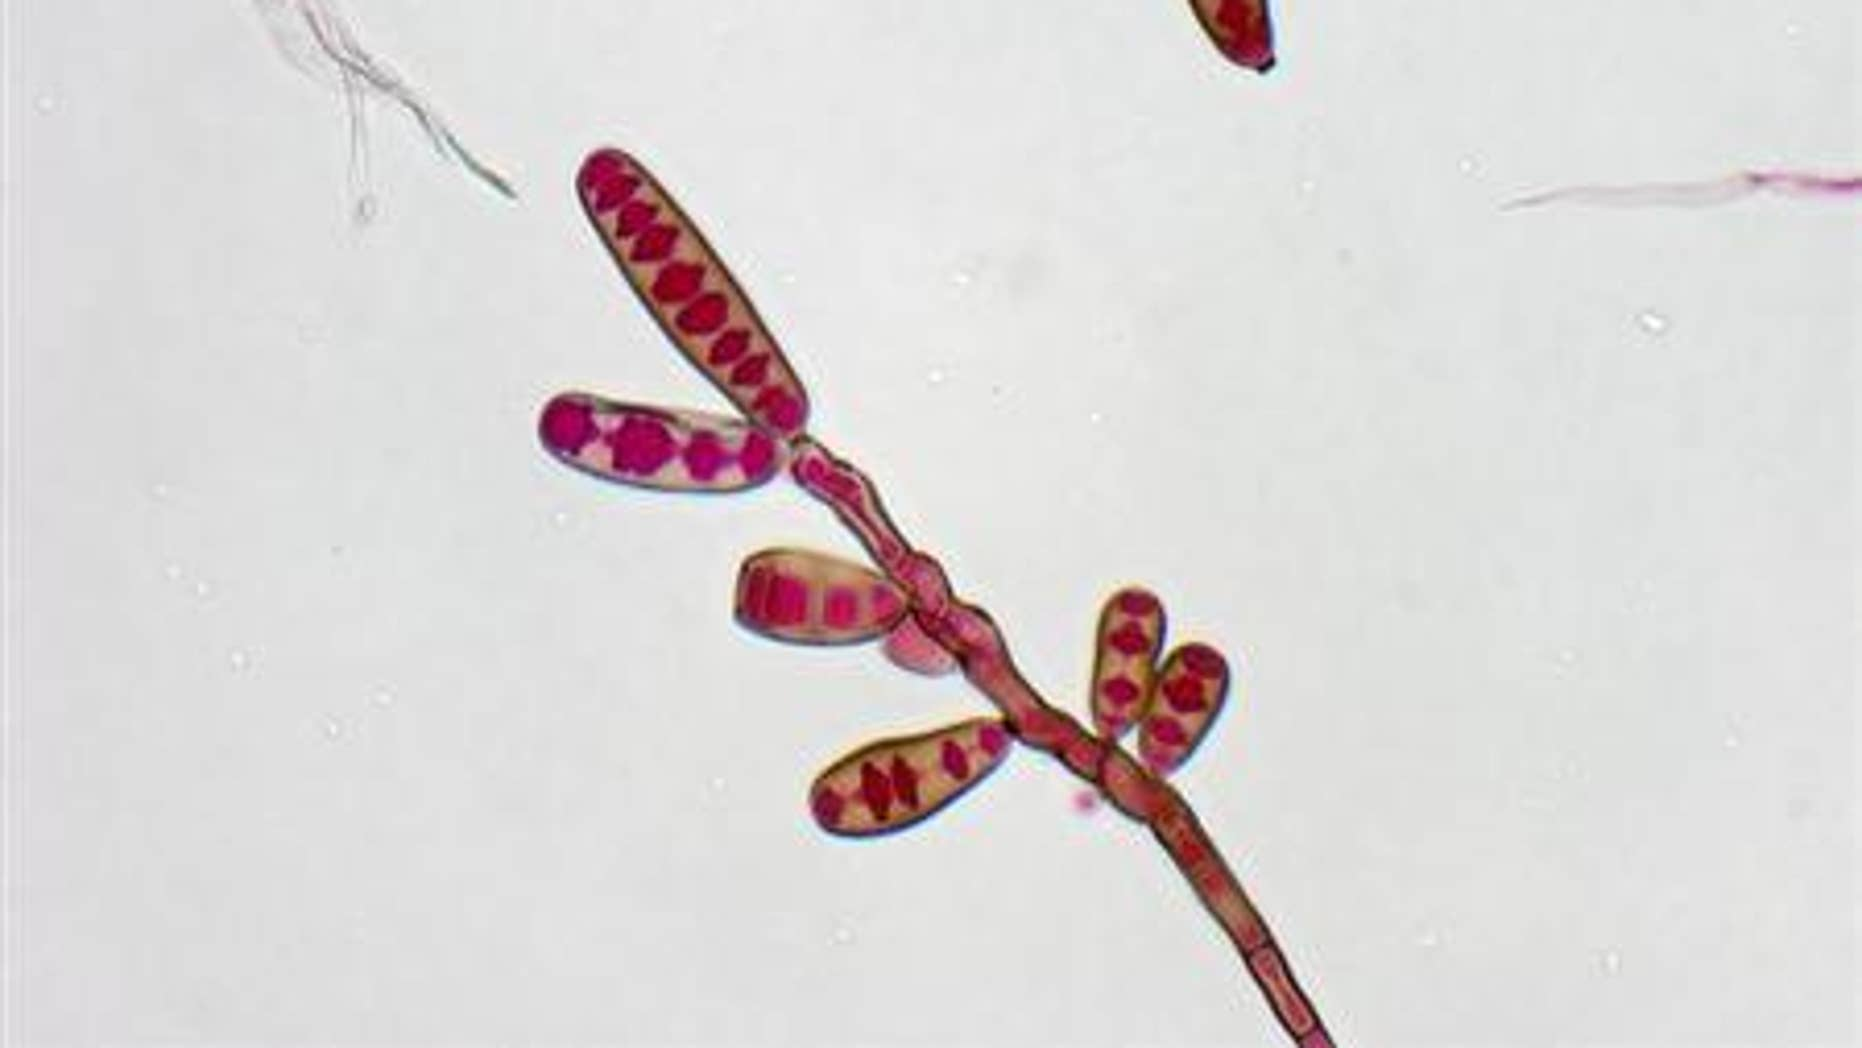 Exserohilum rostratum, a type of fungi, is seen in this handout image from the Centres for Disease Control